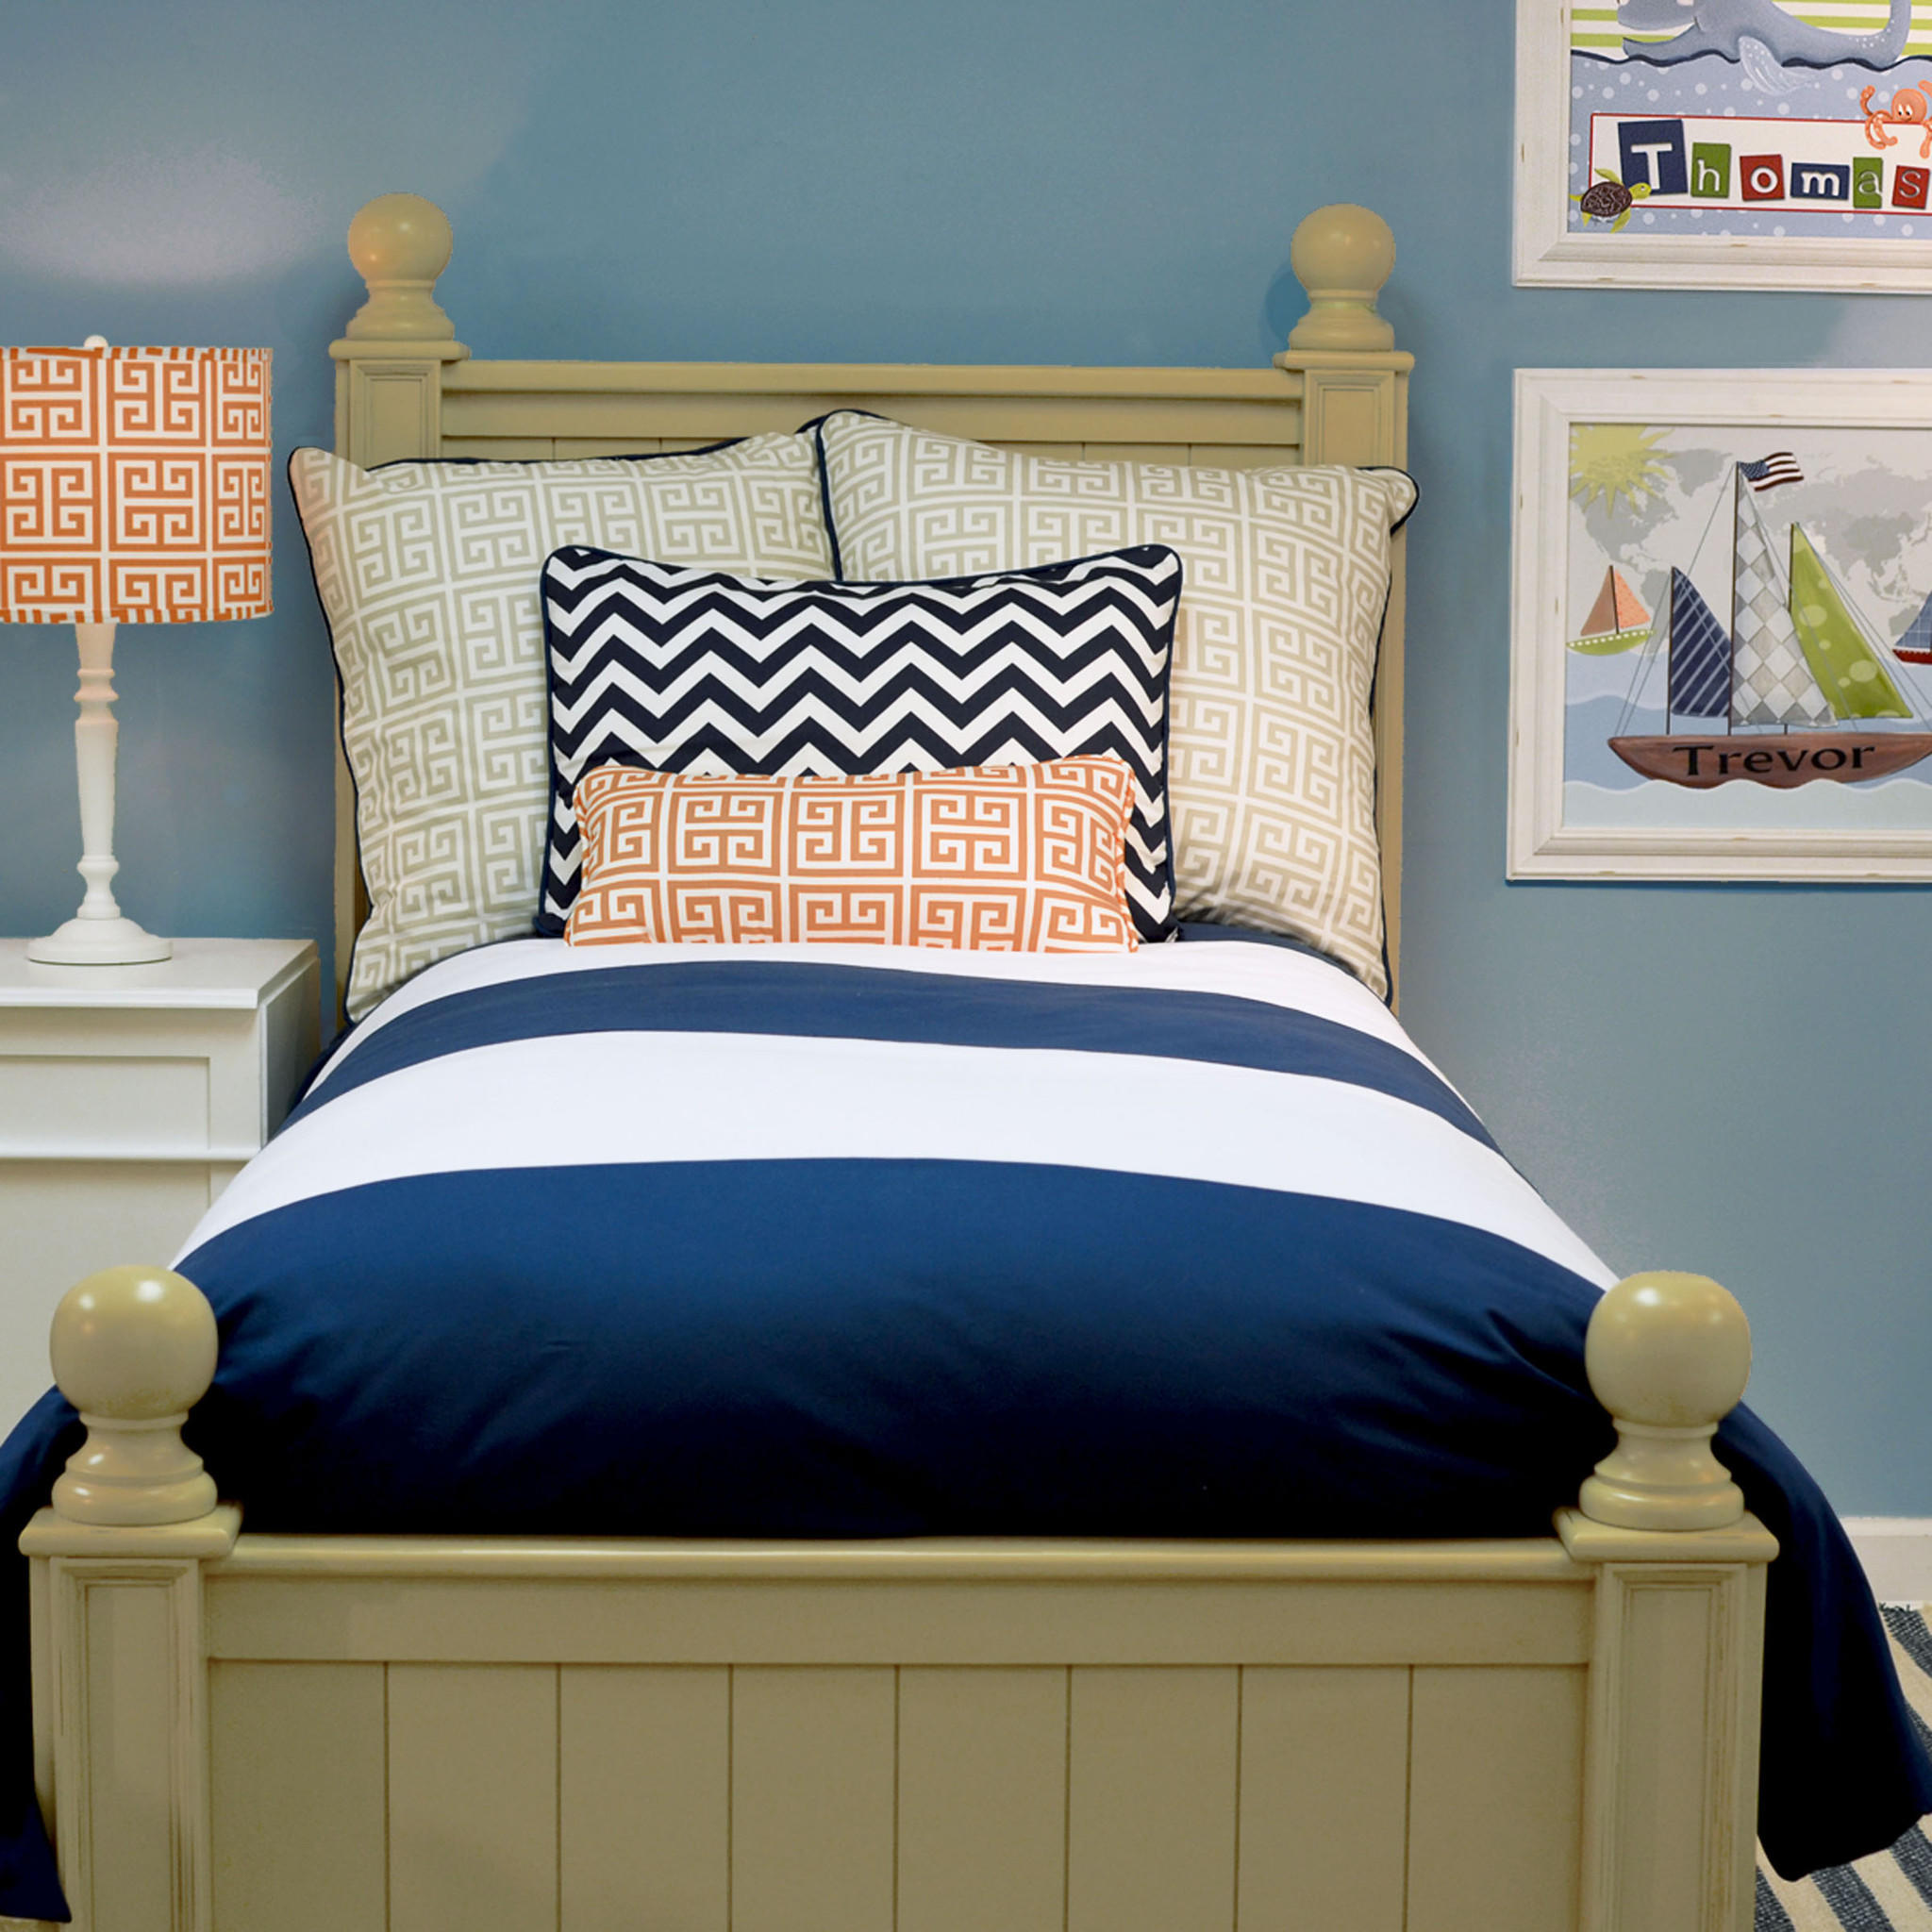 Skate park twin full queen daybed bedding from jack and jill